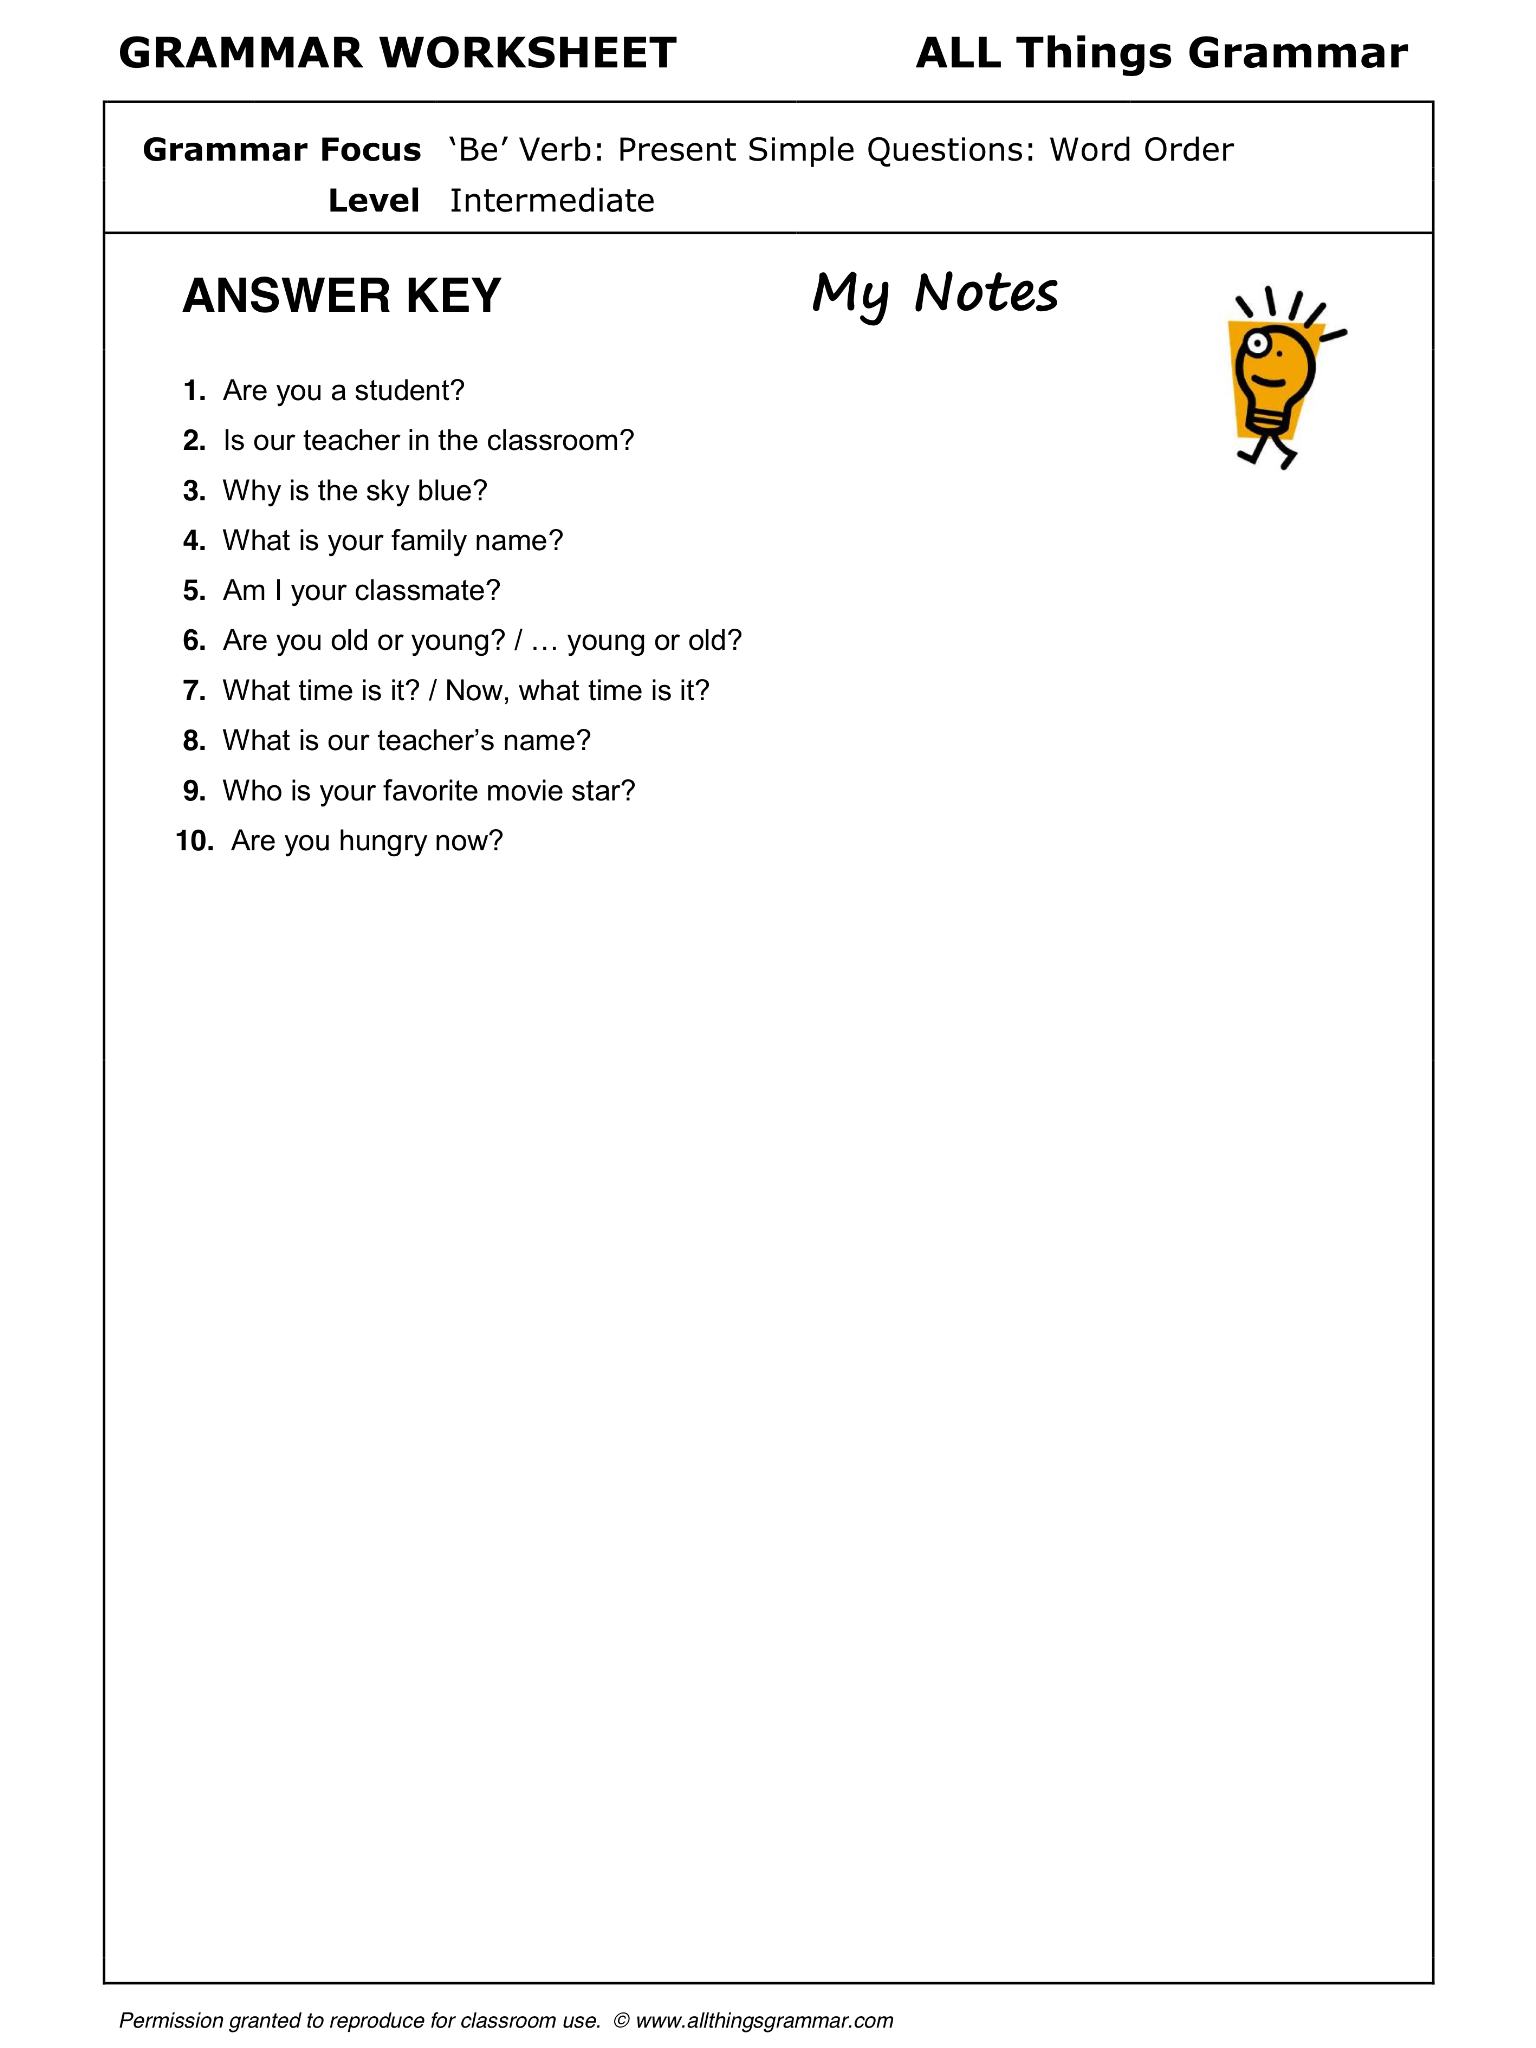 English Grammar Be Verb Present Simple Questions Used